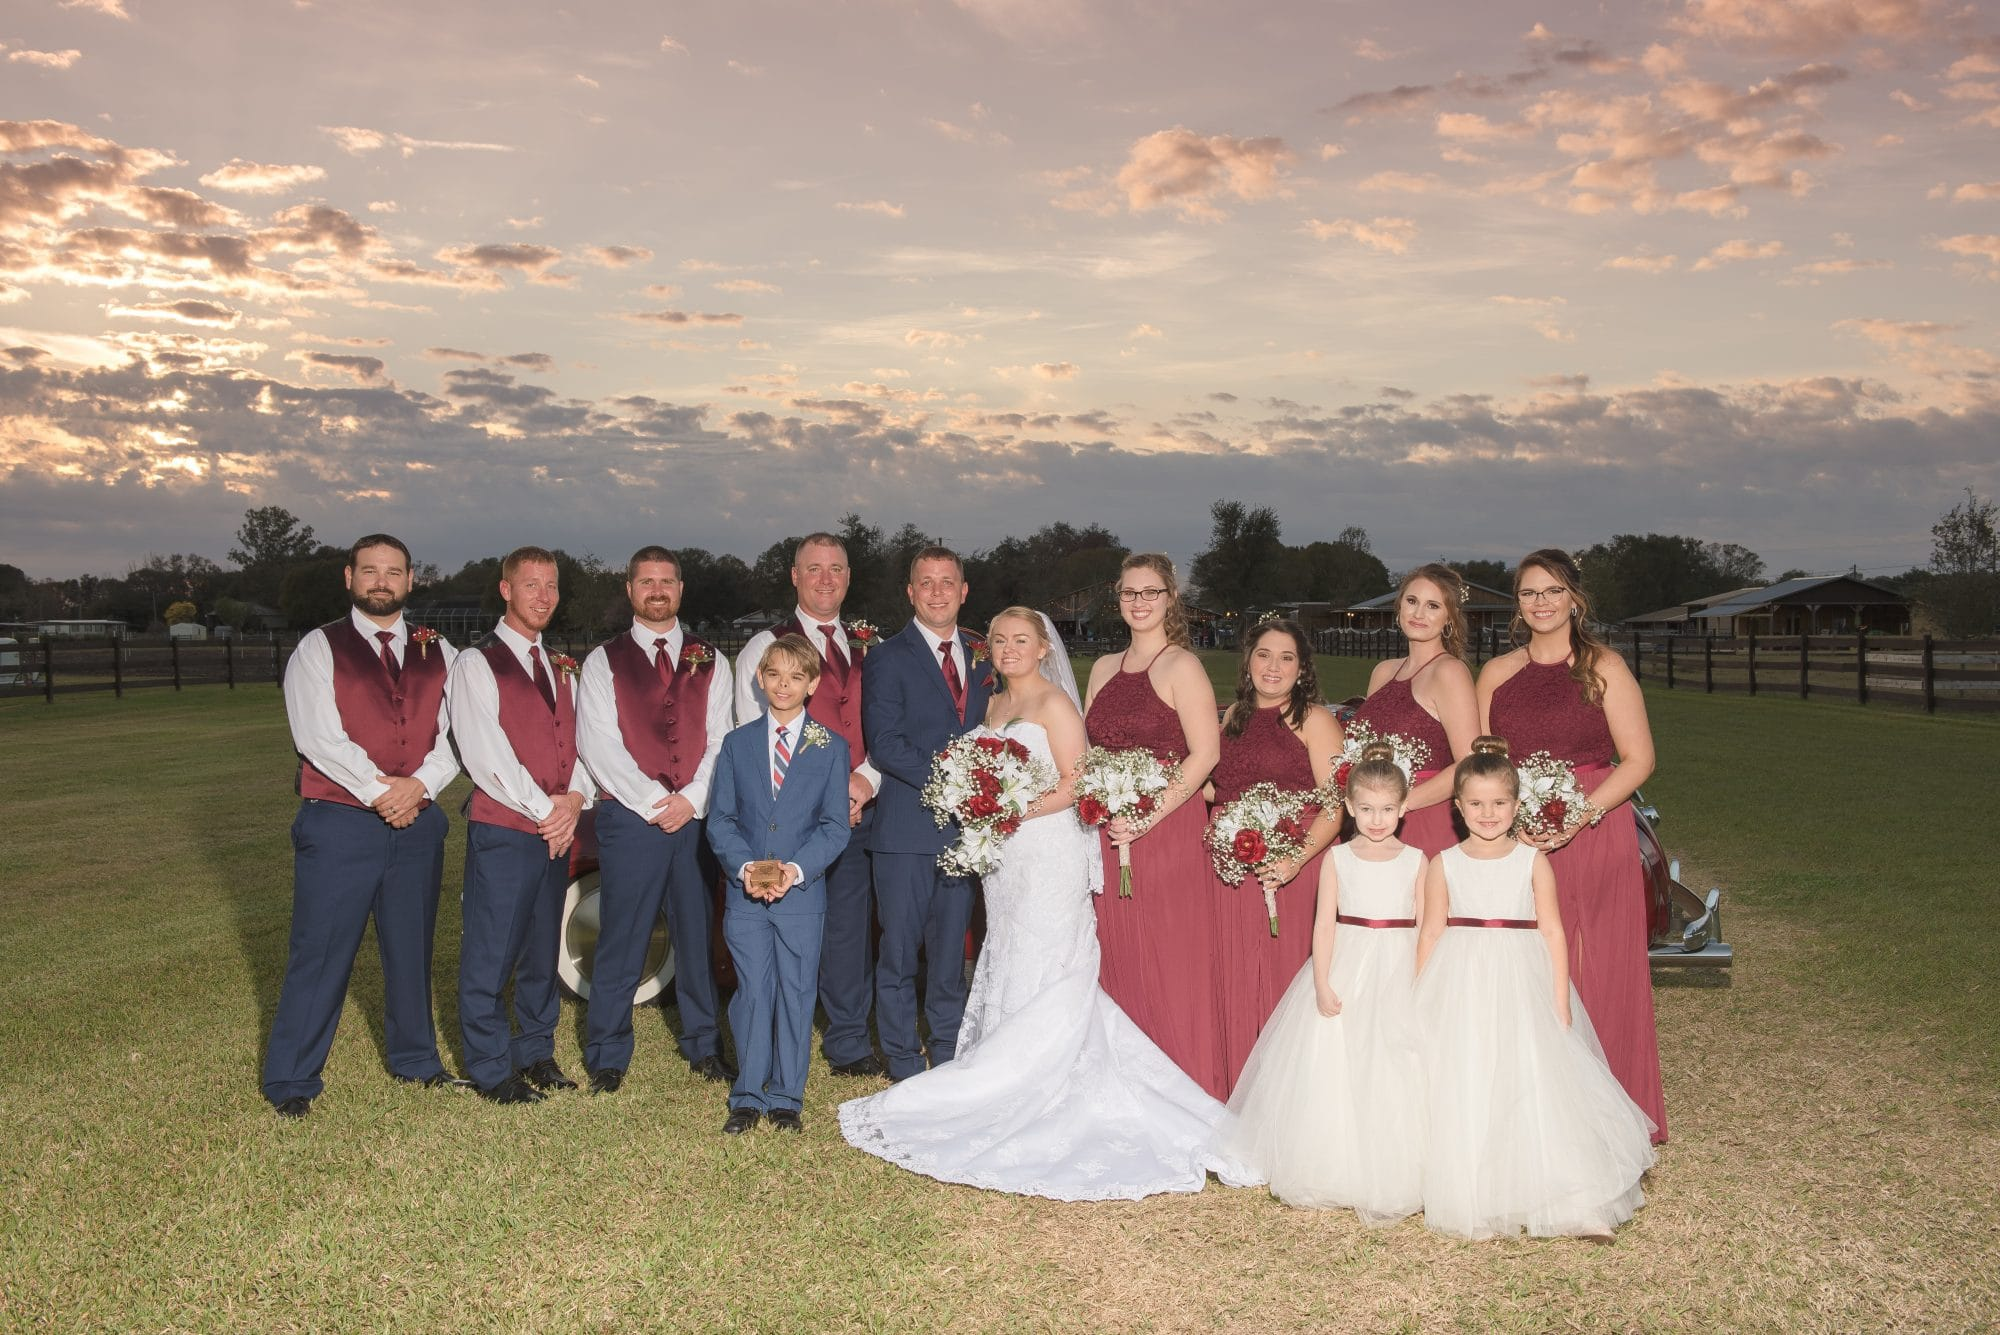 Bride and groom with wedding party in field at sunset.